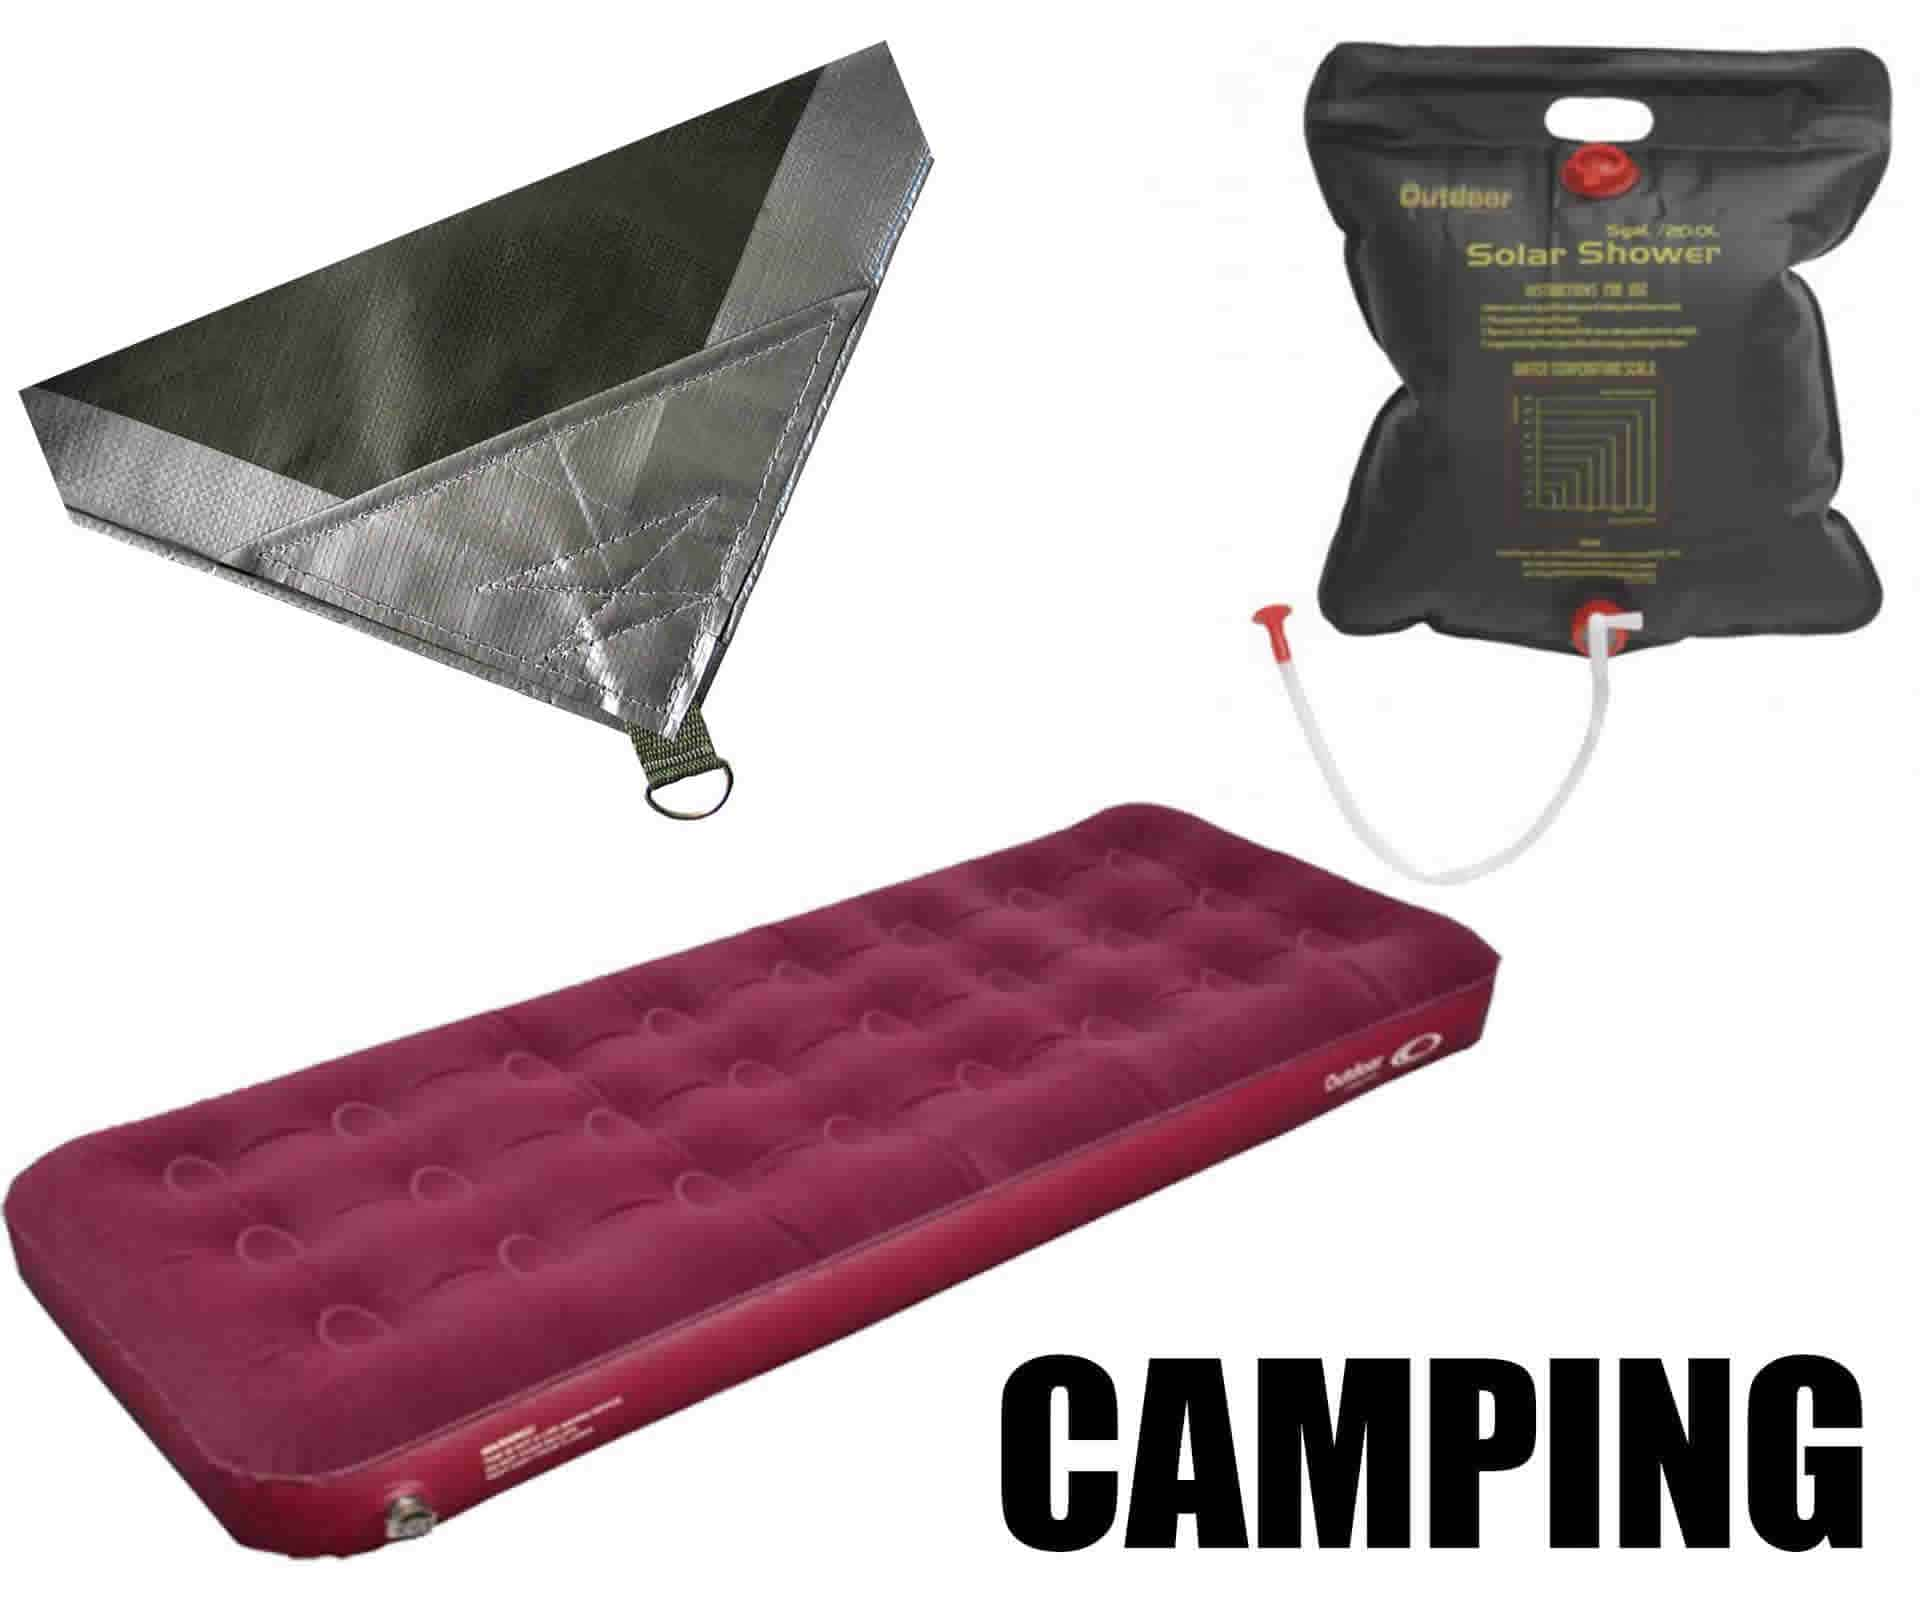 Online camping gear and portable solar panels